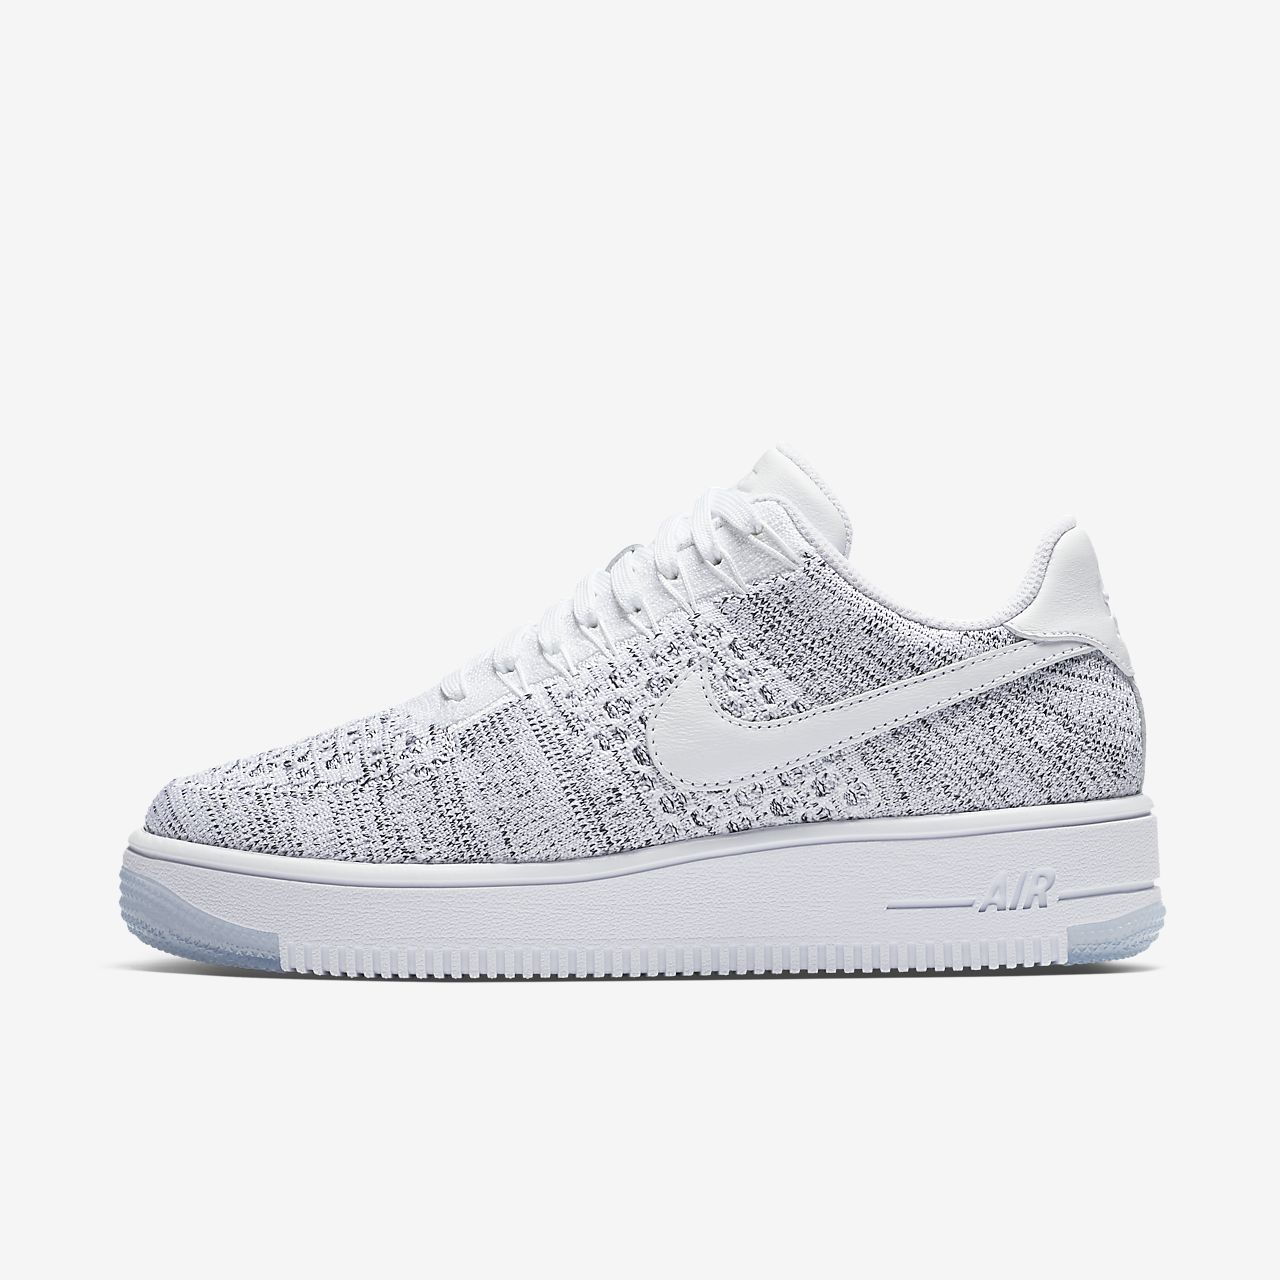 nike air force 1 flyknit low women's white nz